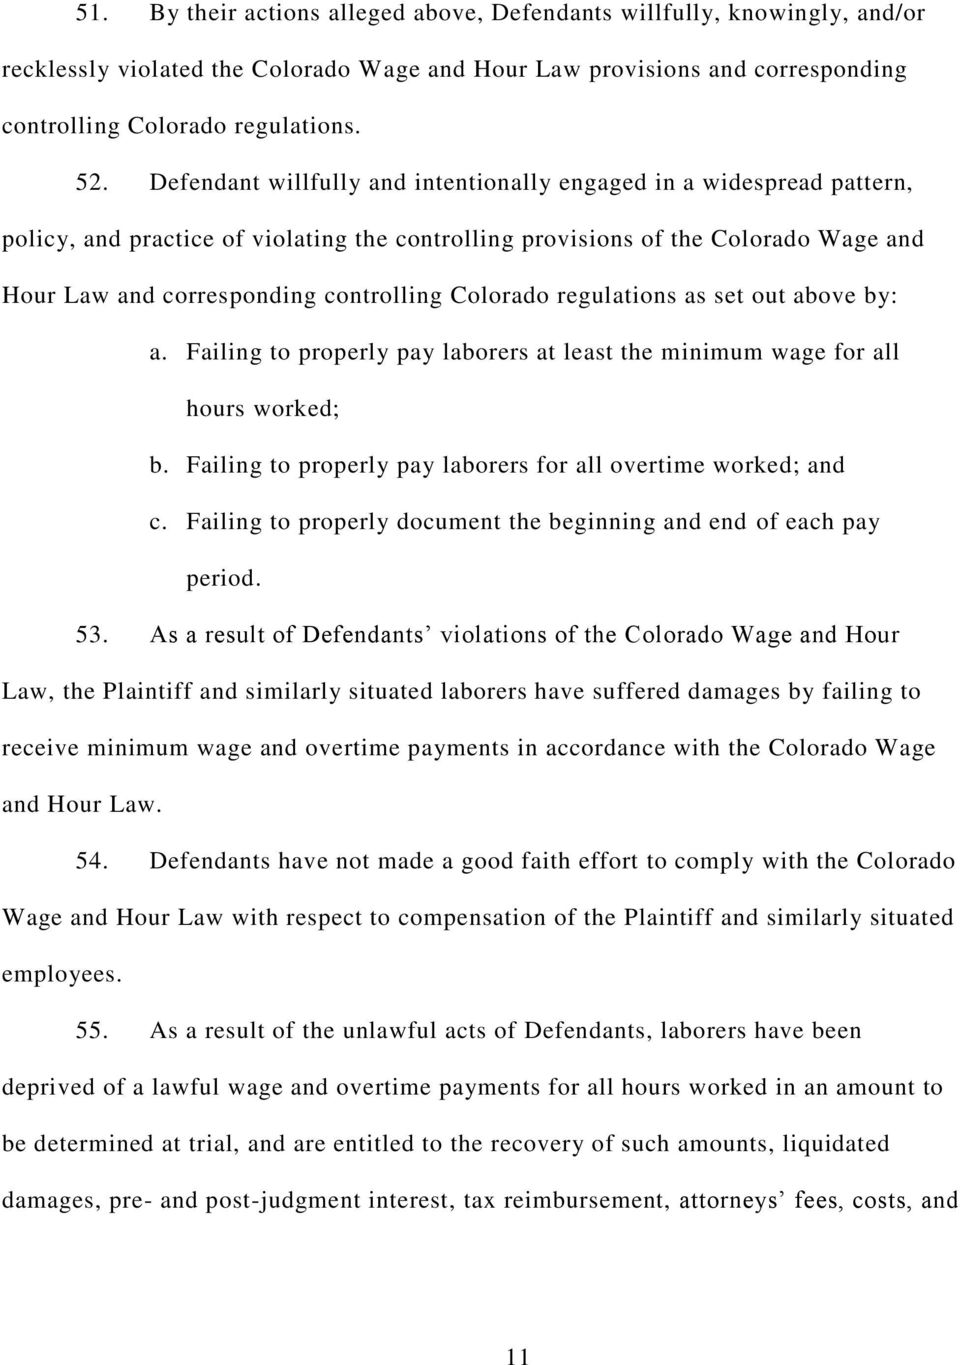 Colorado regulations as set out above by: a. Failing to properly pay laborers at least the minimum wage for all hours worked; b. Failing to properly pay laborers for all overtime worked; and c.